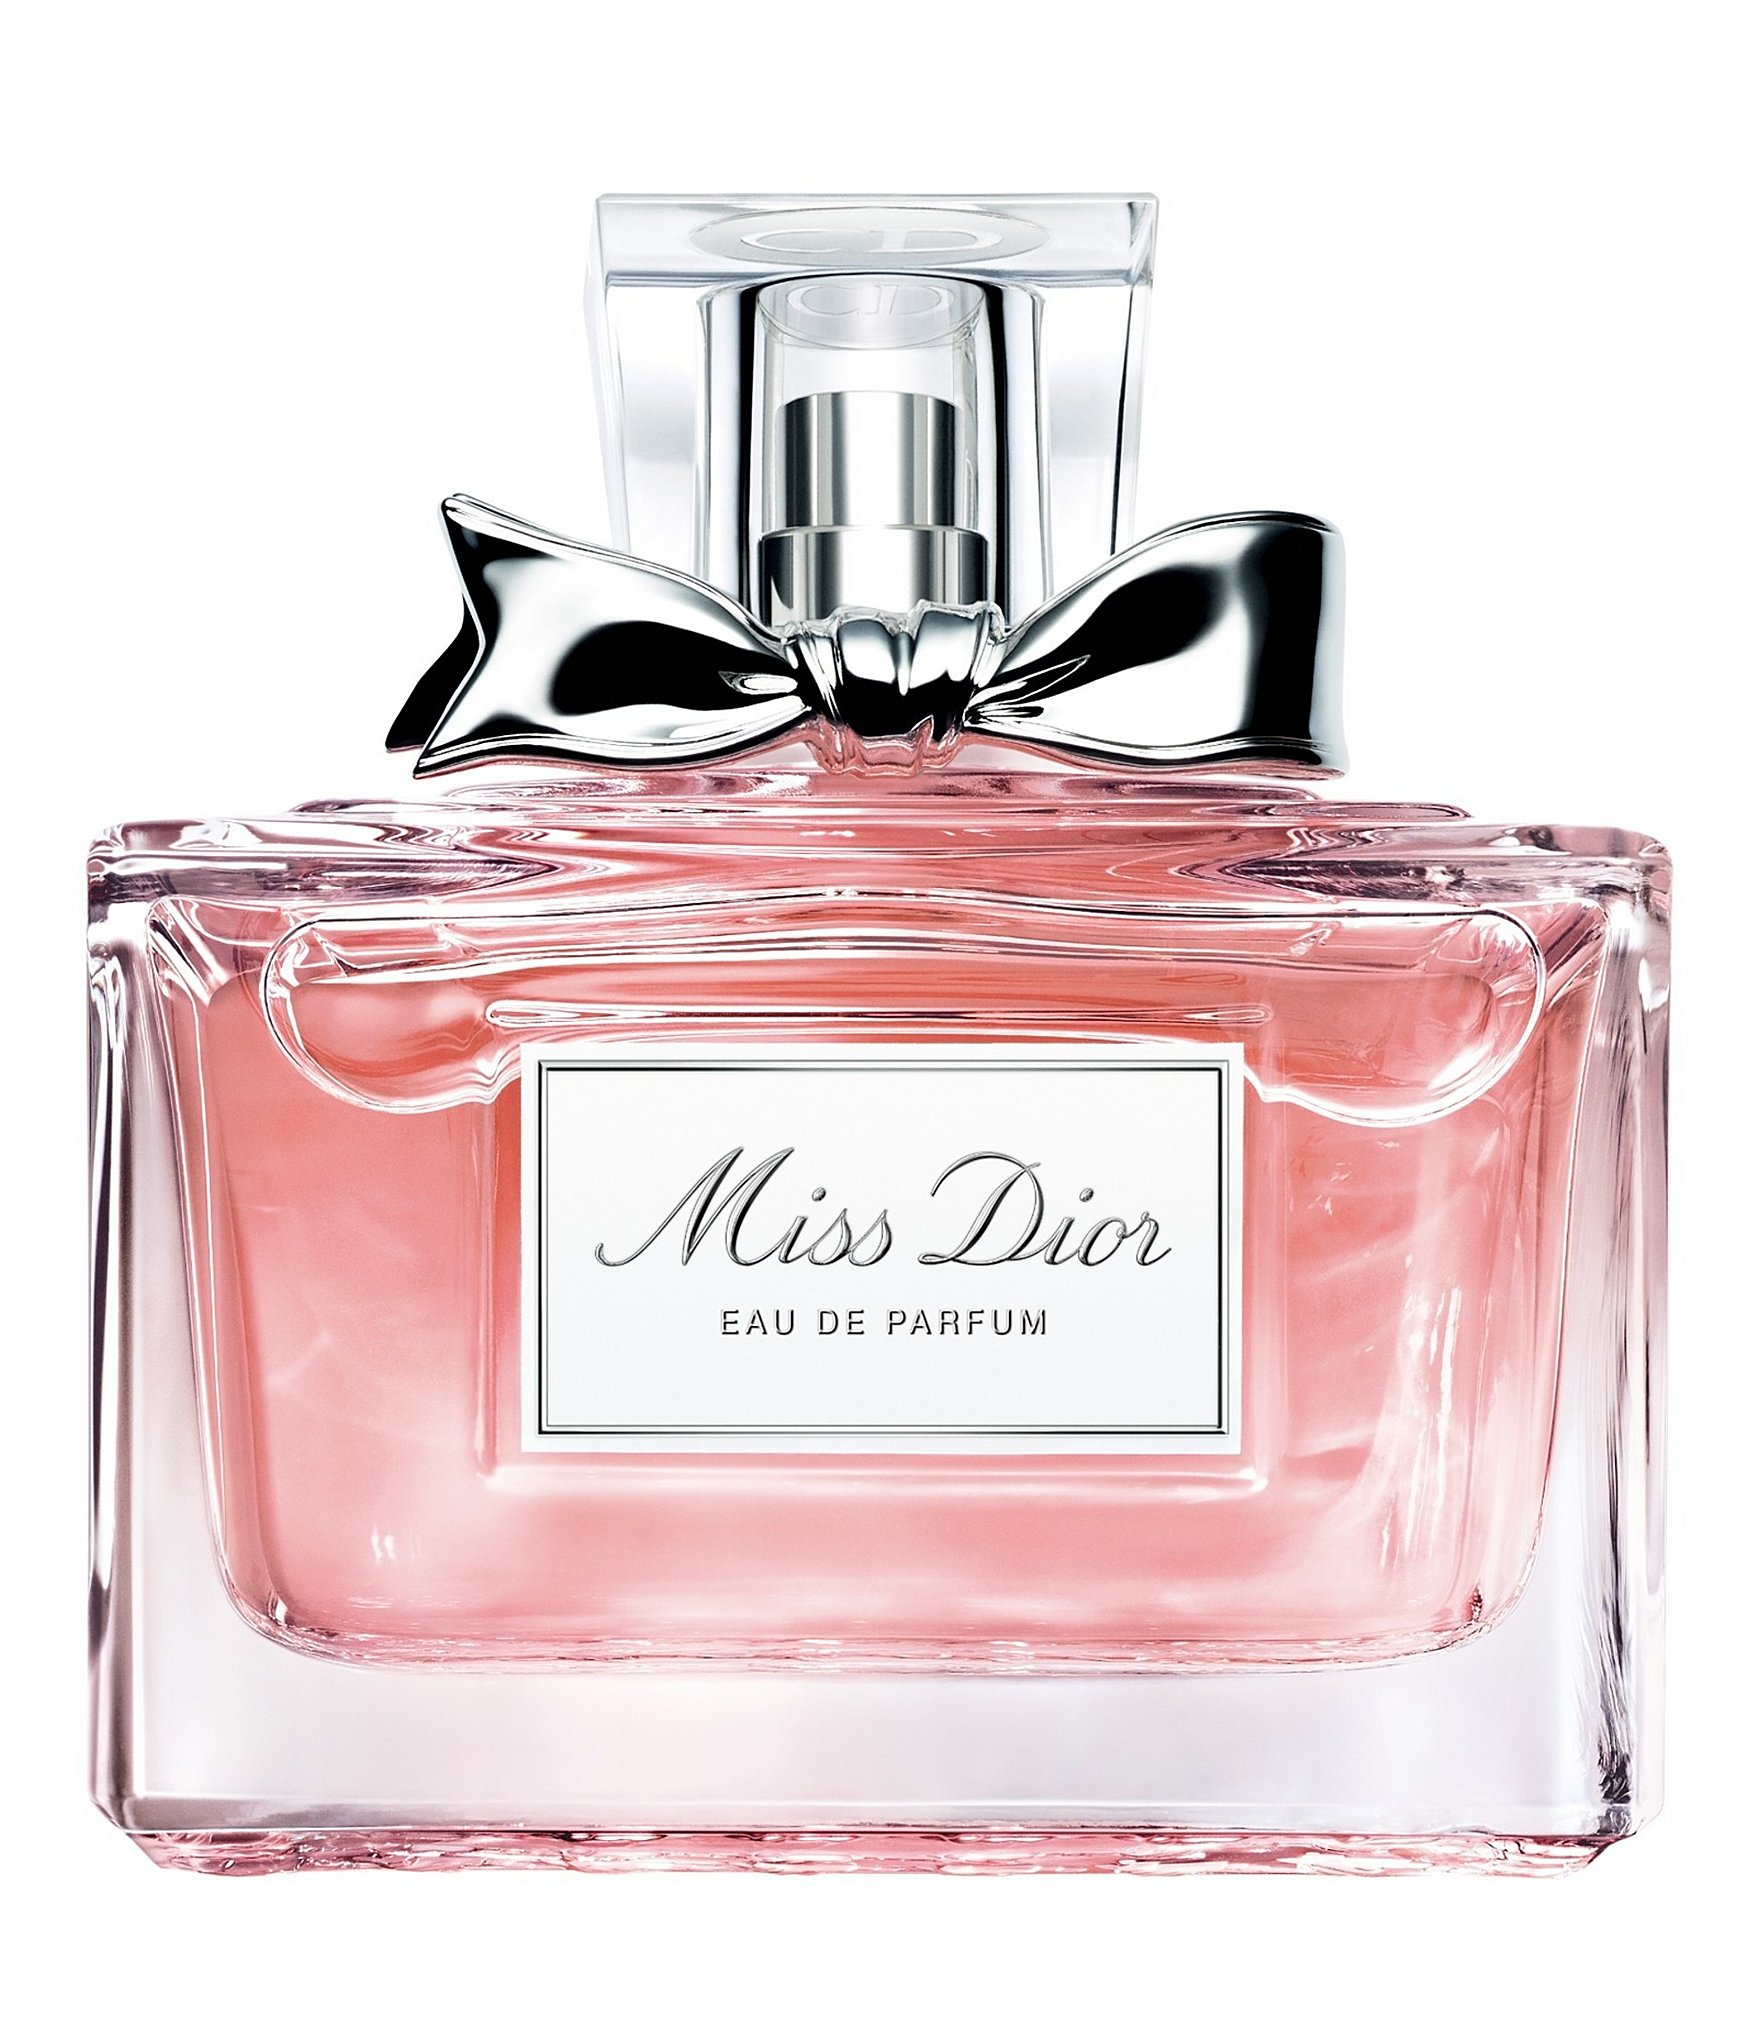 dior miss dior eau de parfum spray dillard 39 s. Black Bedroom Furniture Sets. Home Design Ideas